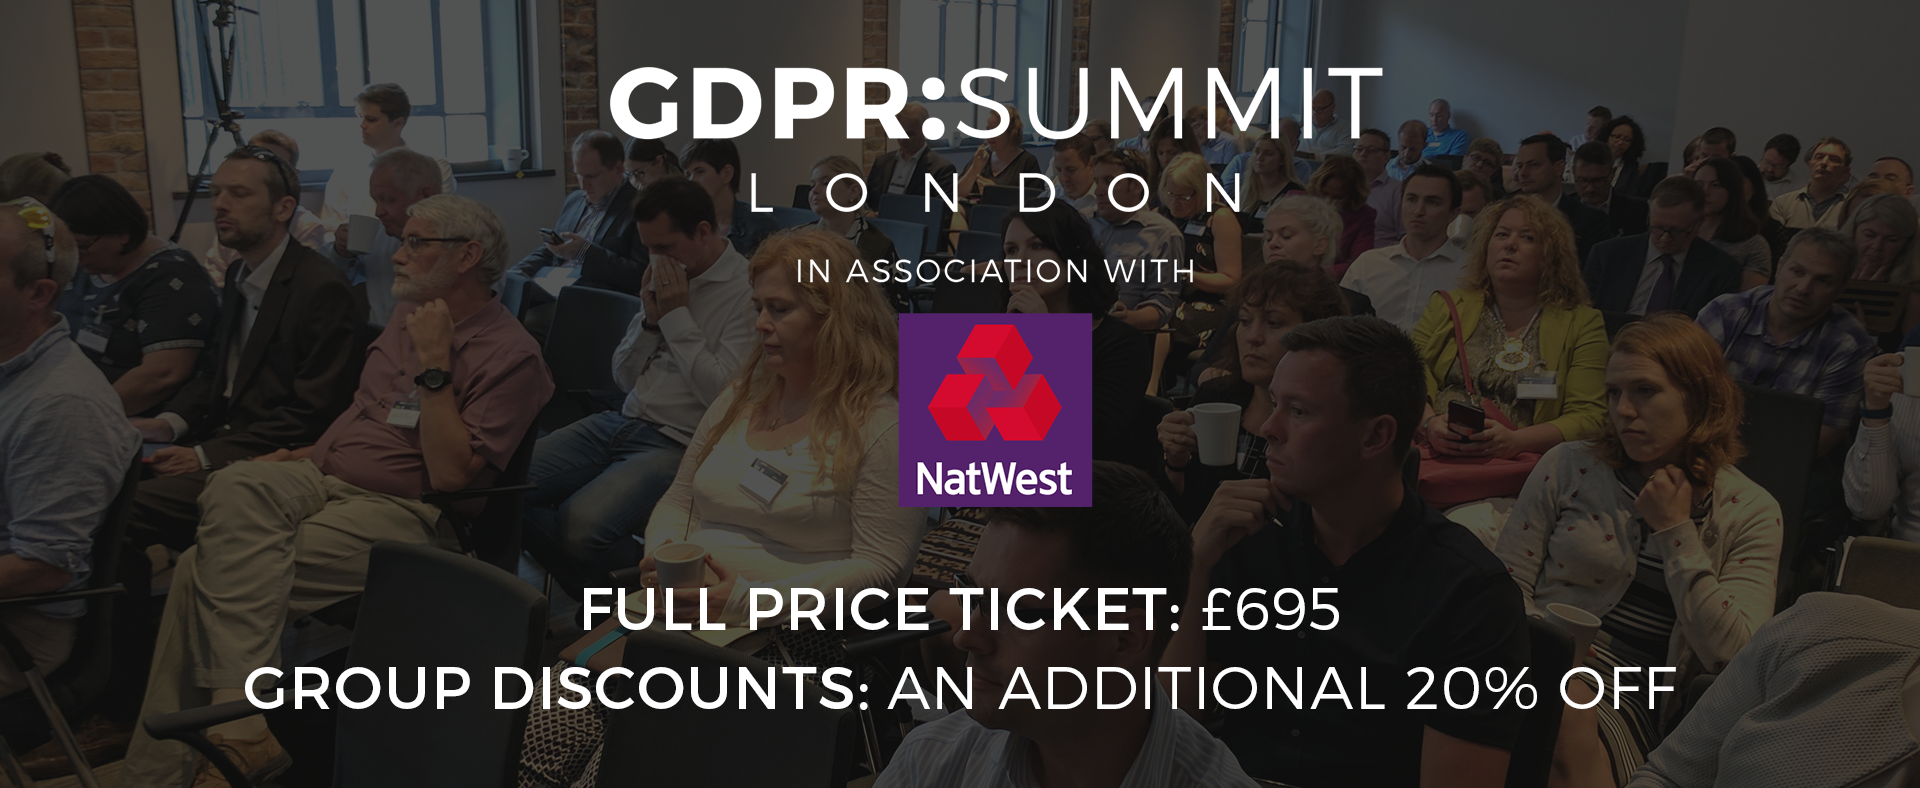 GDPR: SUMMIT LONDON, JOIN THE PATH TO COMPLIANCE